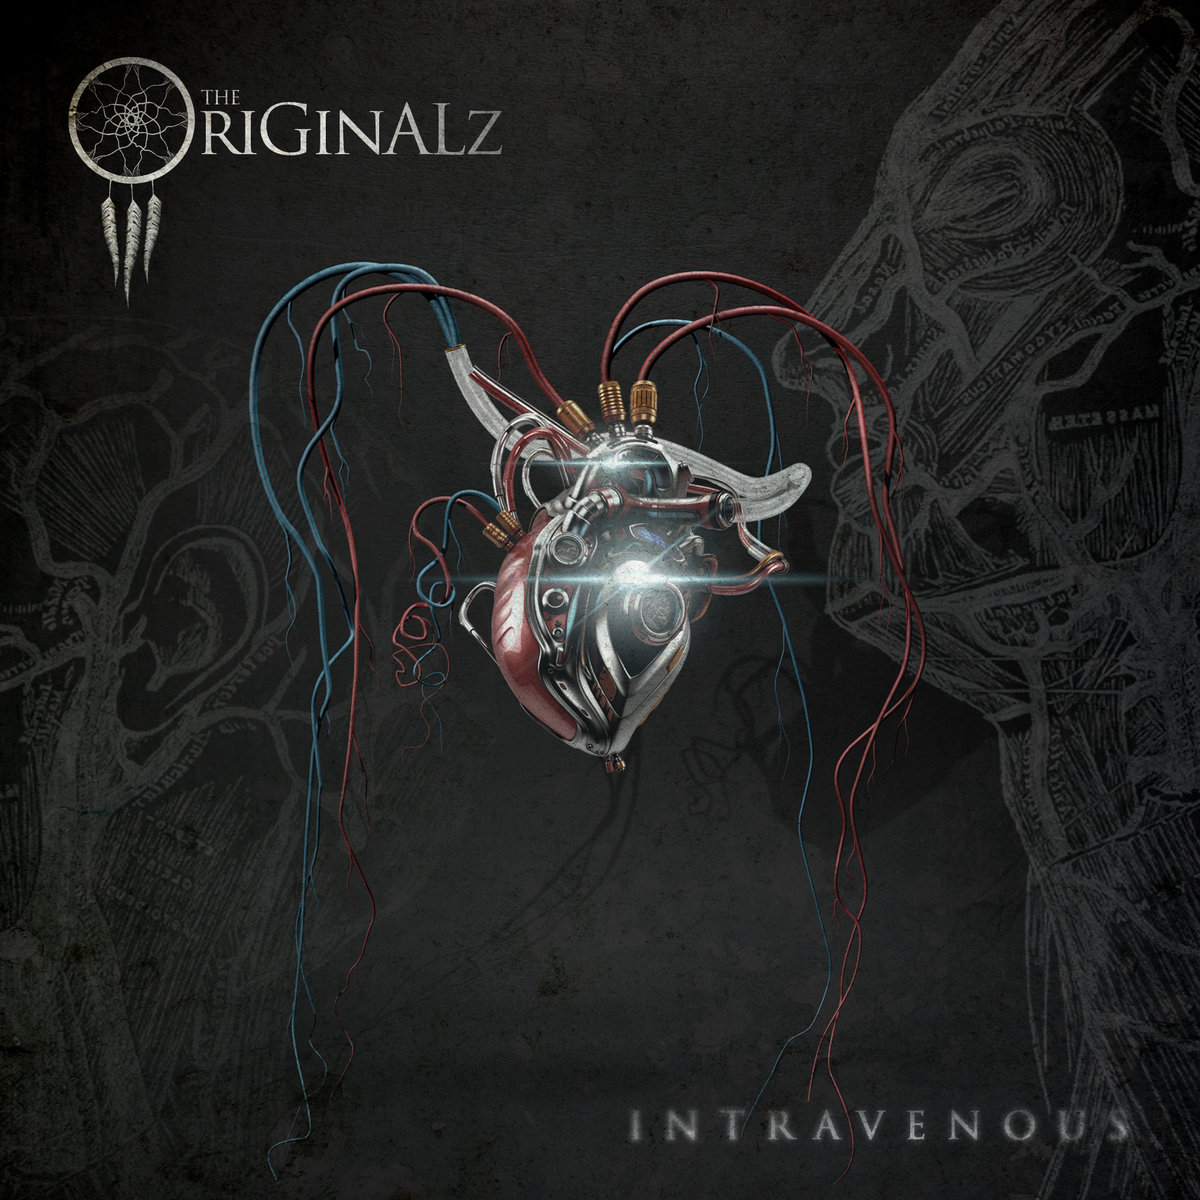 The OriGinALz - Purple Unicorn (Perkulat0r Remix) @ 'Intravenous' album (Austin)